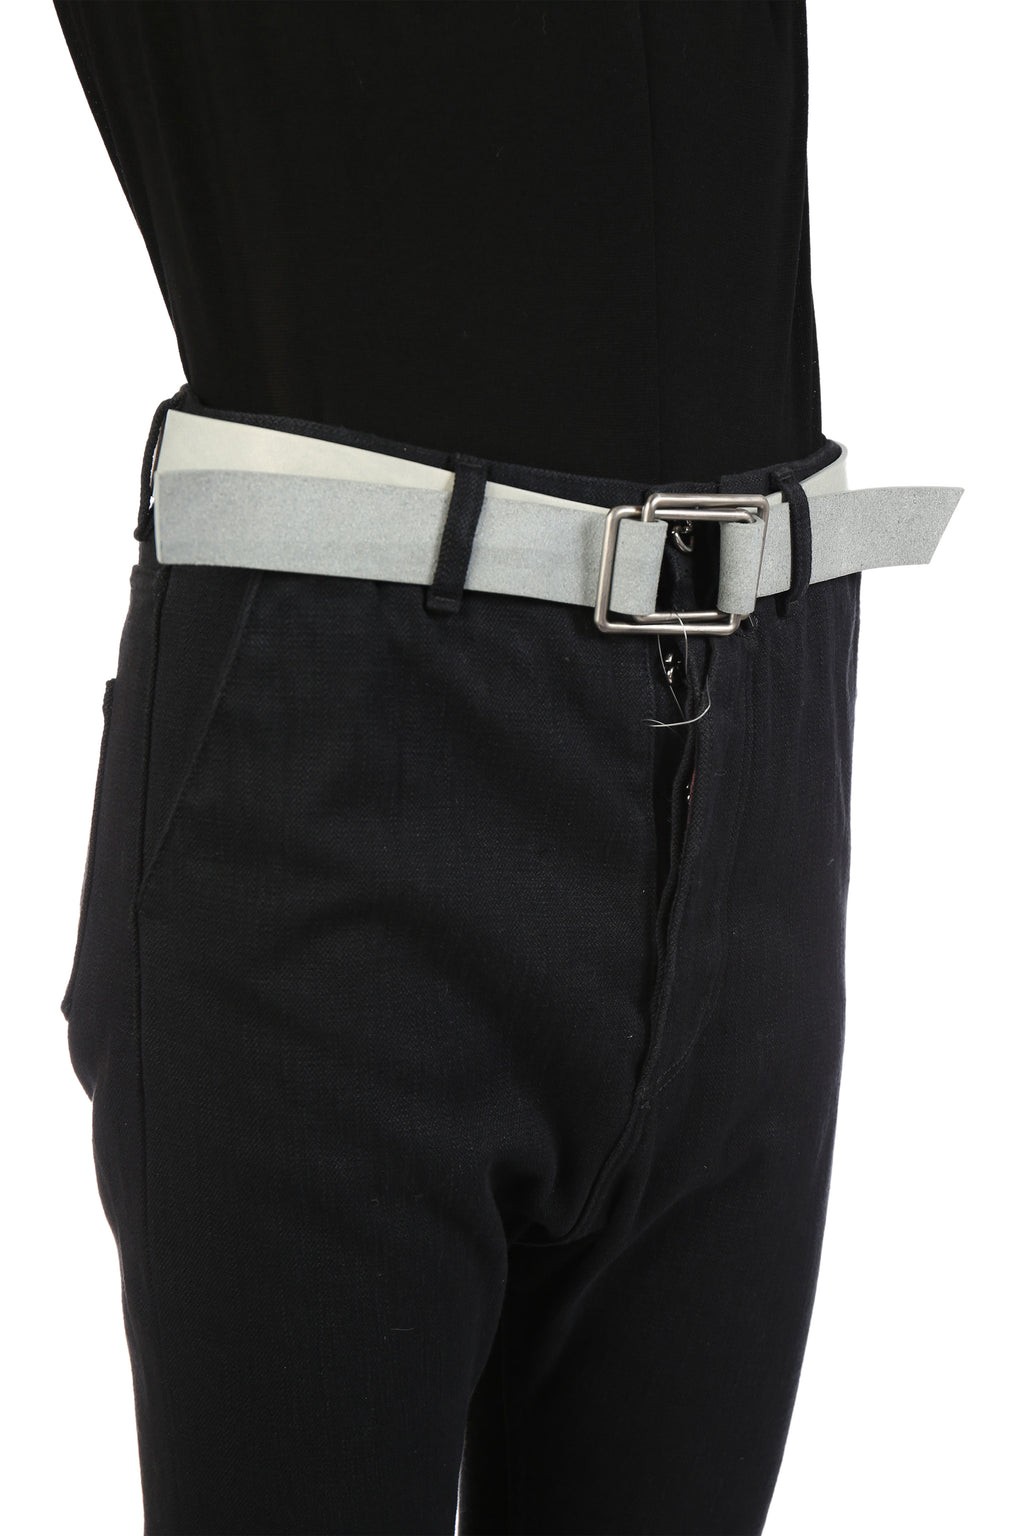 DEEPTI CRUX BUCKLE CLASSIC LEATHER BELT FWBG